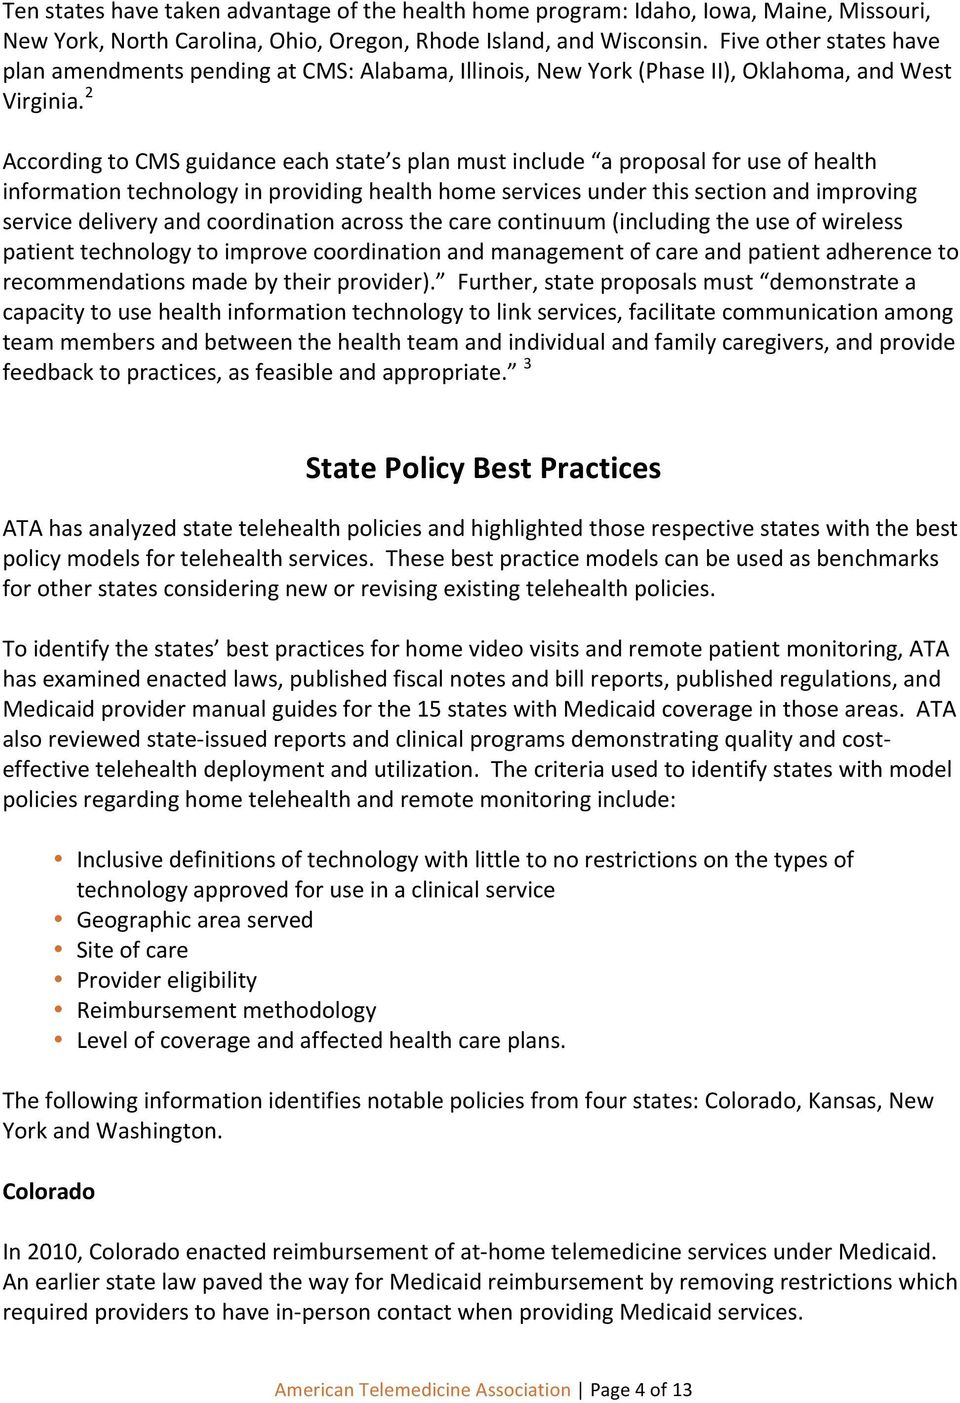 2 According to CMS guidance each state s plan must include a proposal for use of health information technology in providing health home services under this section and improving service delivery and